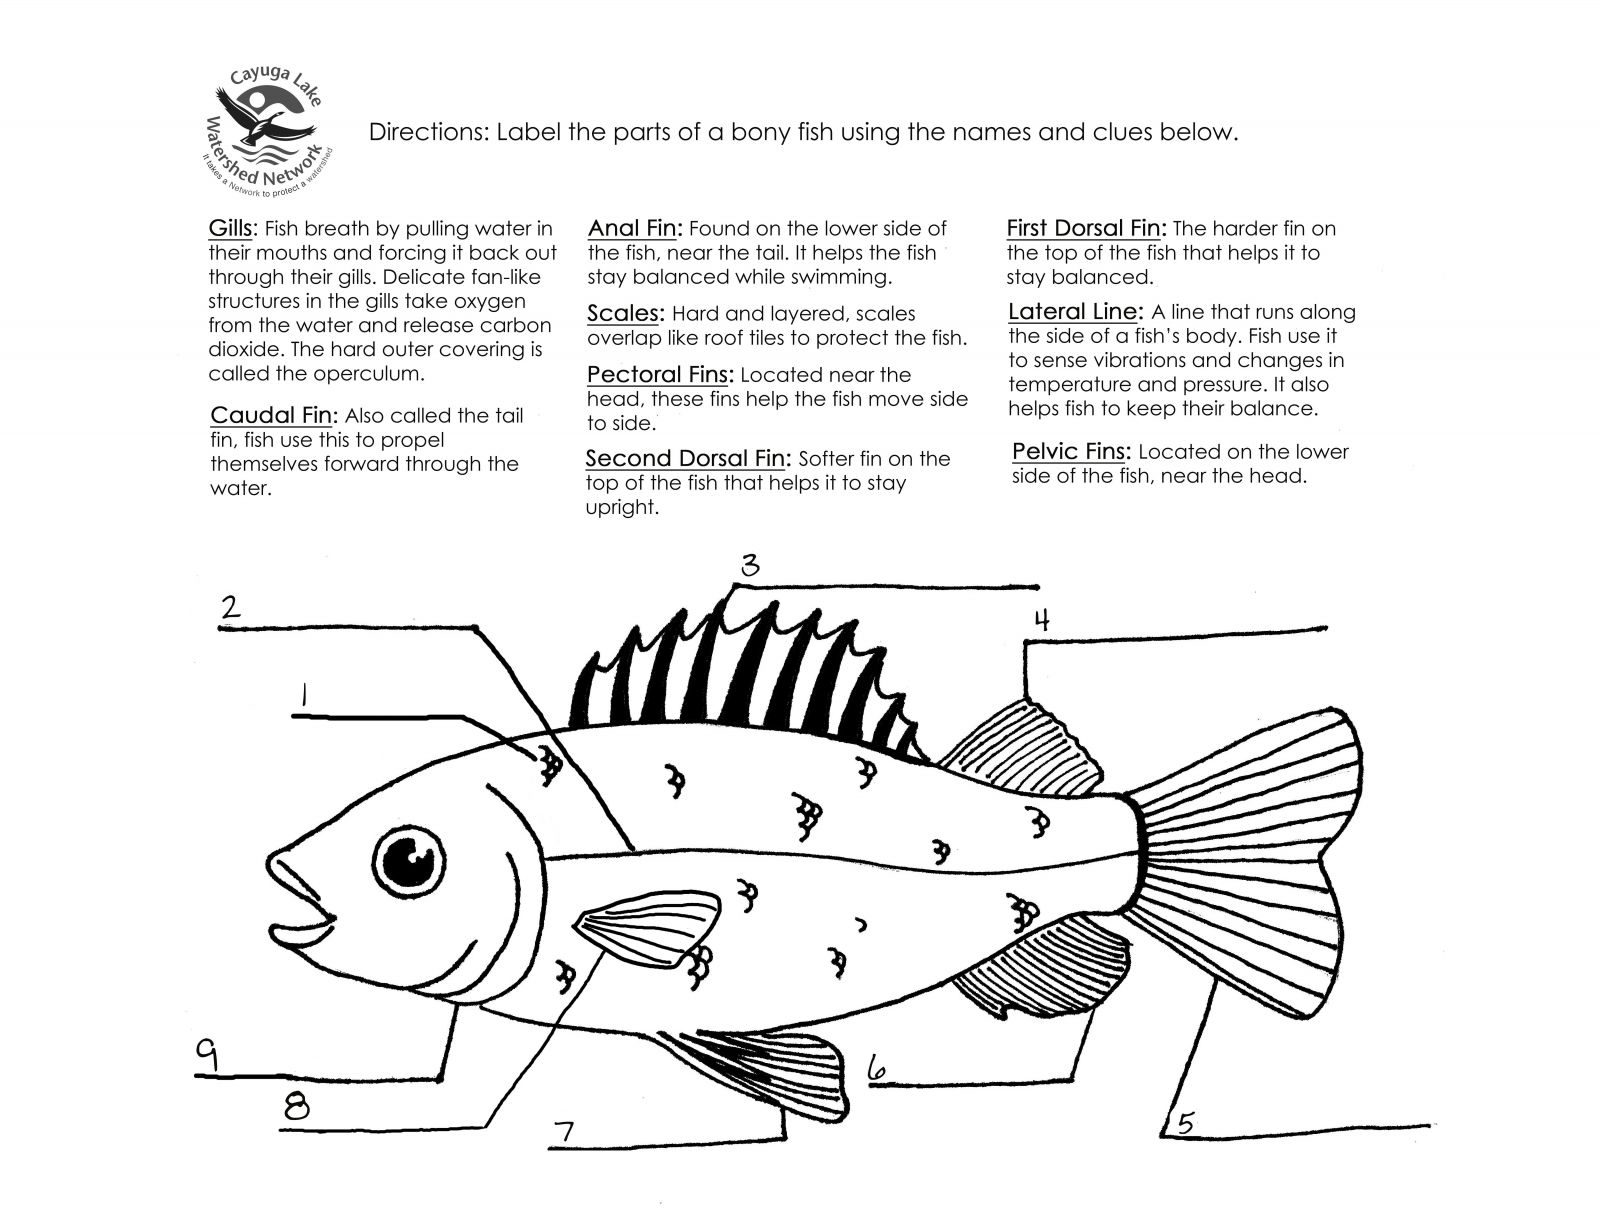 Worksheets Fish Anatomy Worksheet bony fish anatomy worksheet choice image human learning images coloring pages and activities cayuga lake watershed network